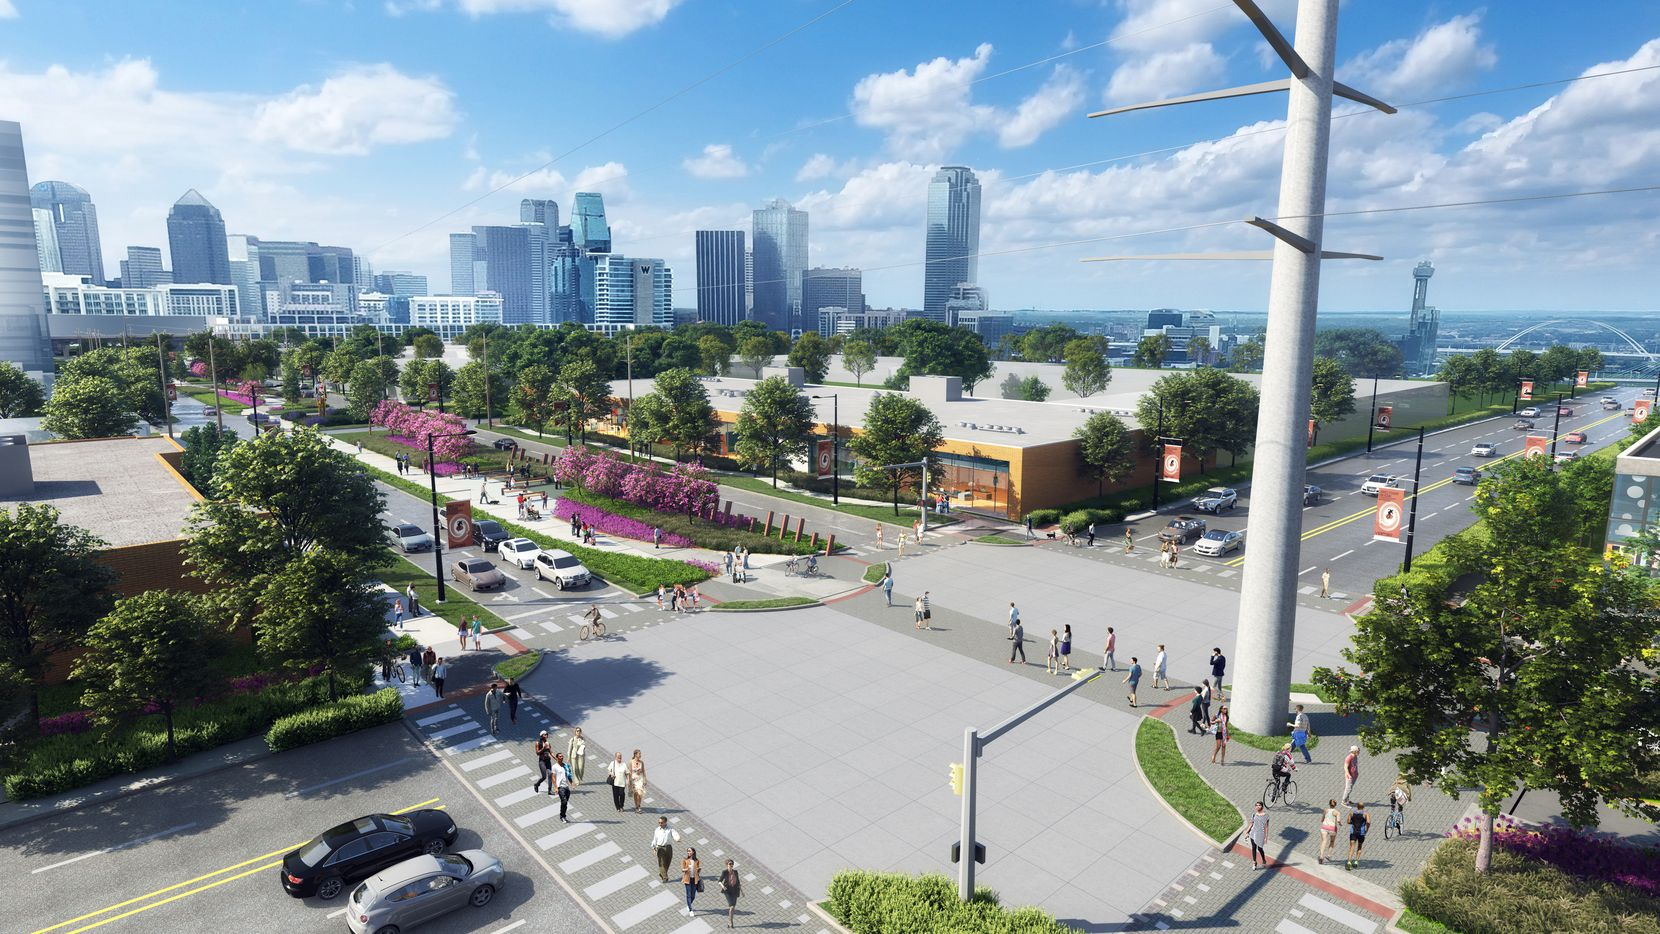 A rendering of what the intersection of Hi Line Drive and Oak Lawn Avenue will look like when The LOOP project is complete.